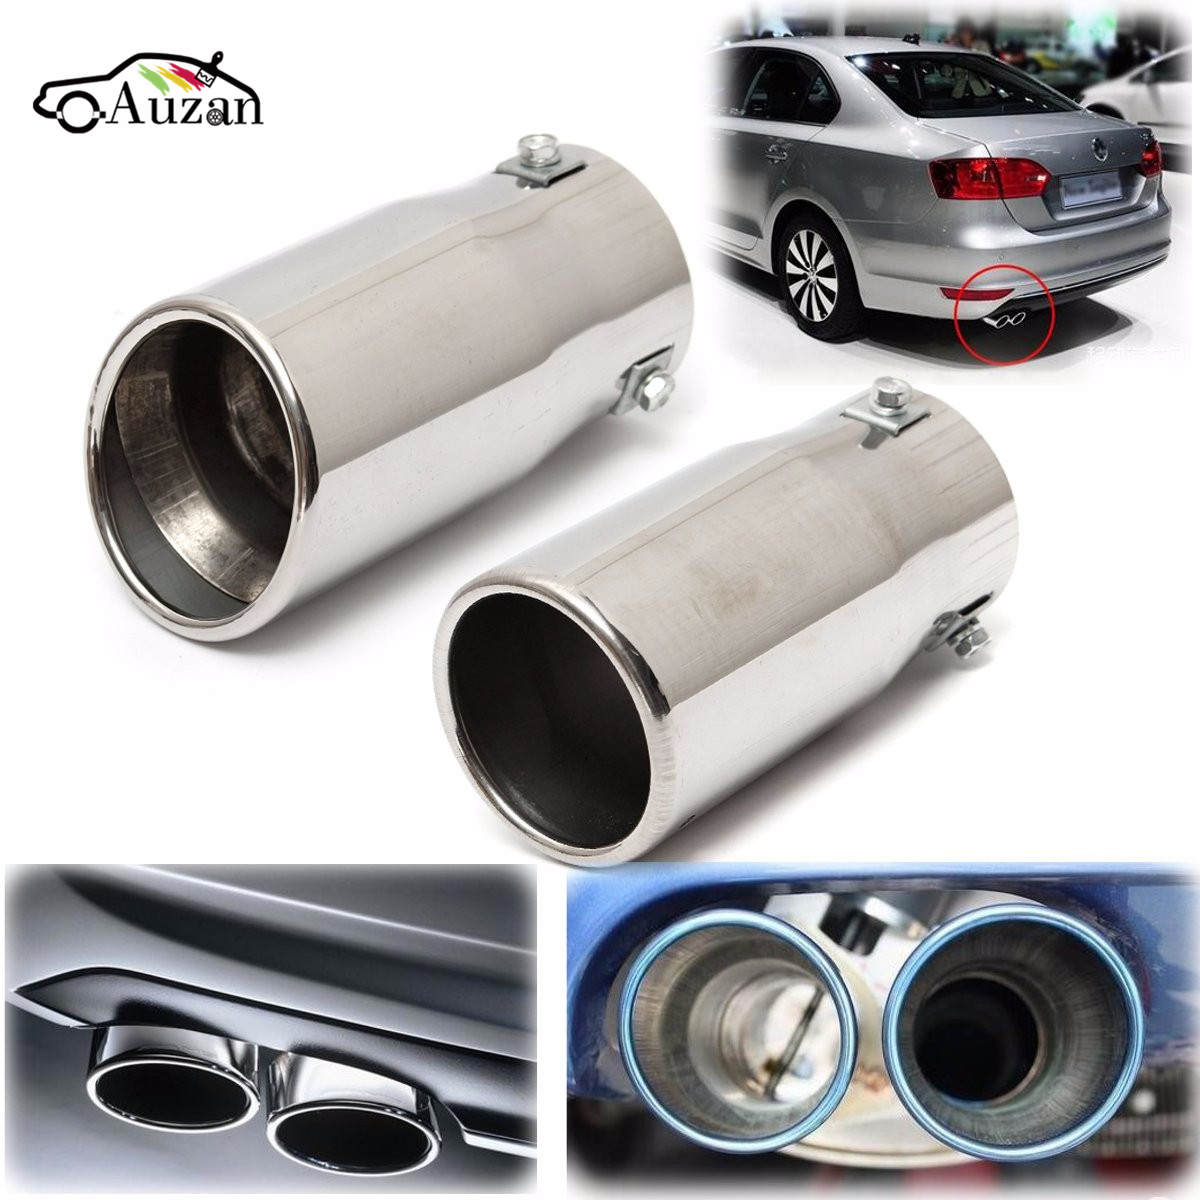 цена на Car Auto Vehicle Chrome Exhaust Pipe Tip Muffler Steel Stainless Trim Tail Tube Car Rear Tail Throat Liner Accessories